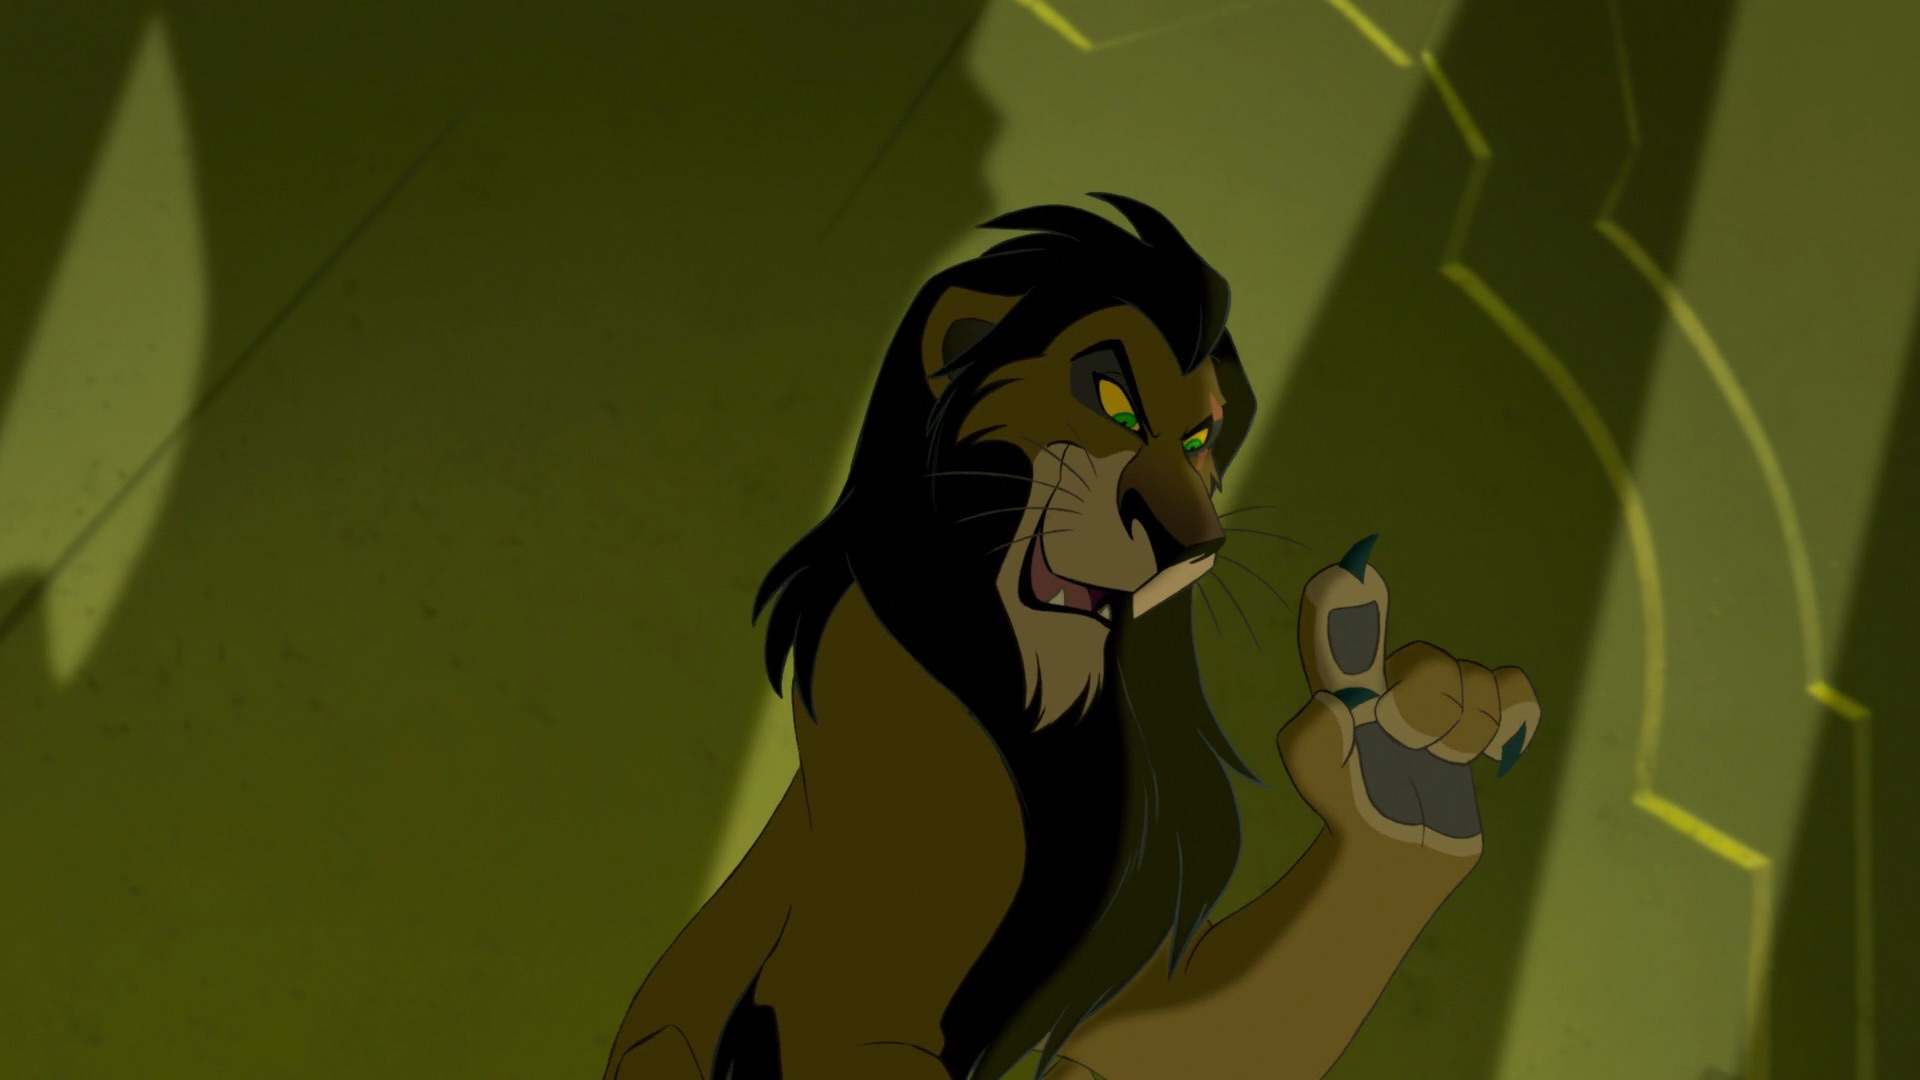 Lion king characters scar - photo#52